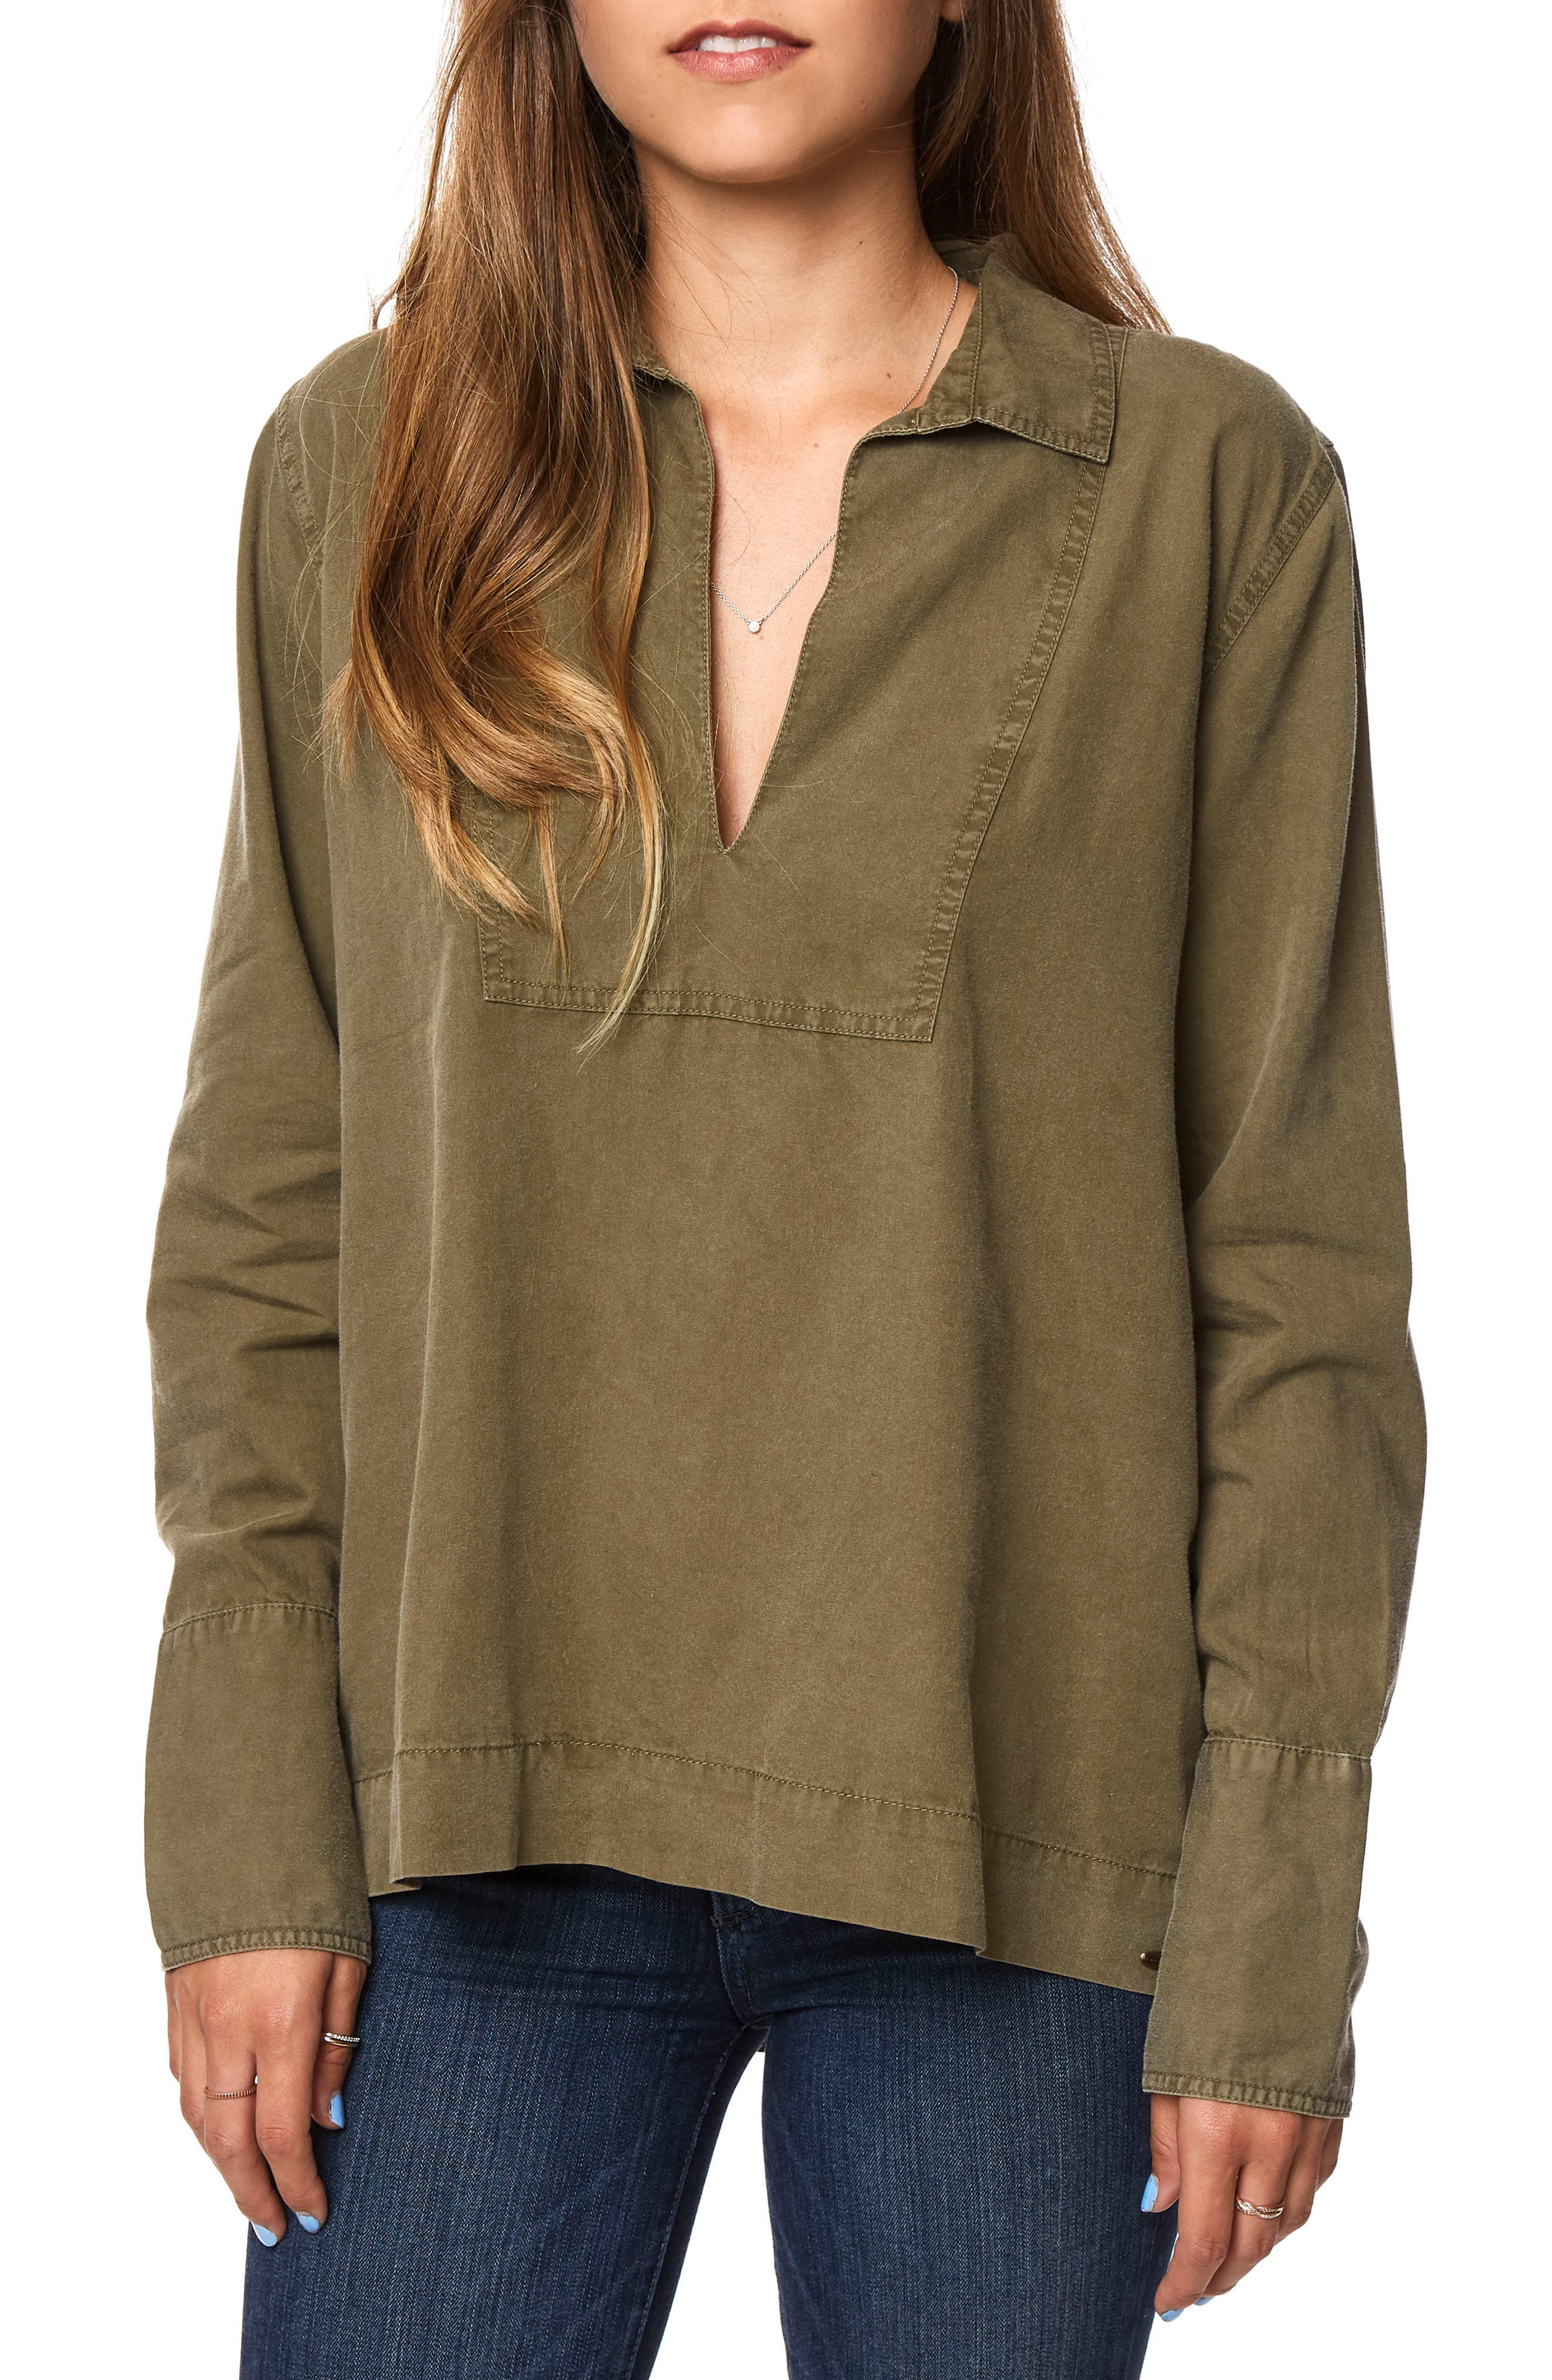 Court Popover Top,                             Main thumbnail 1, color,                             Military Olive - Olv